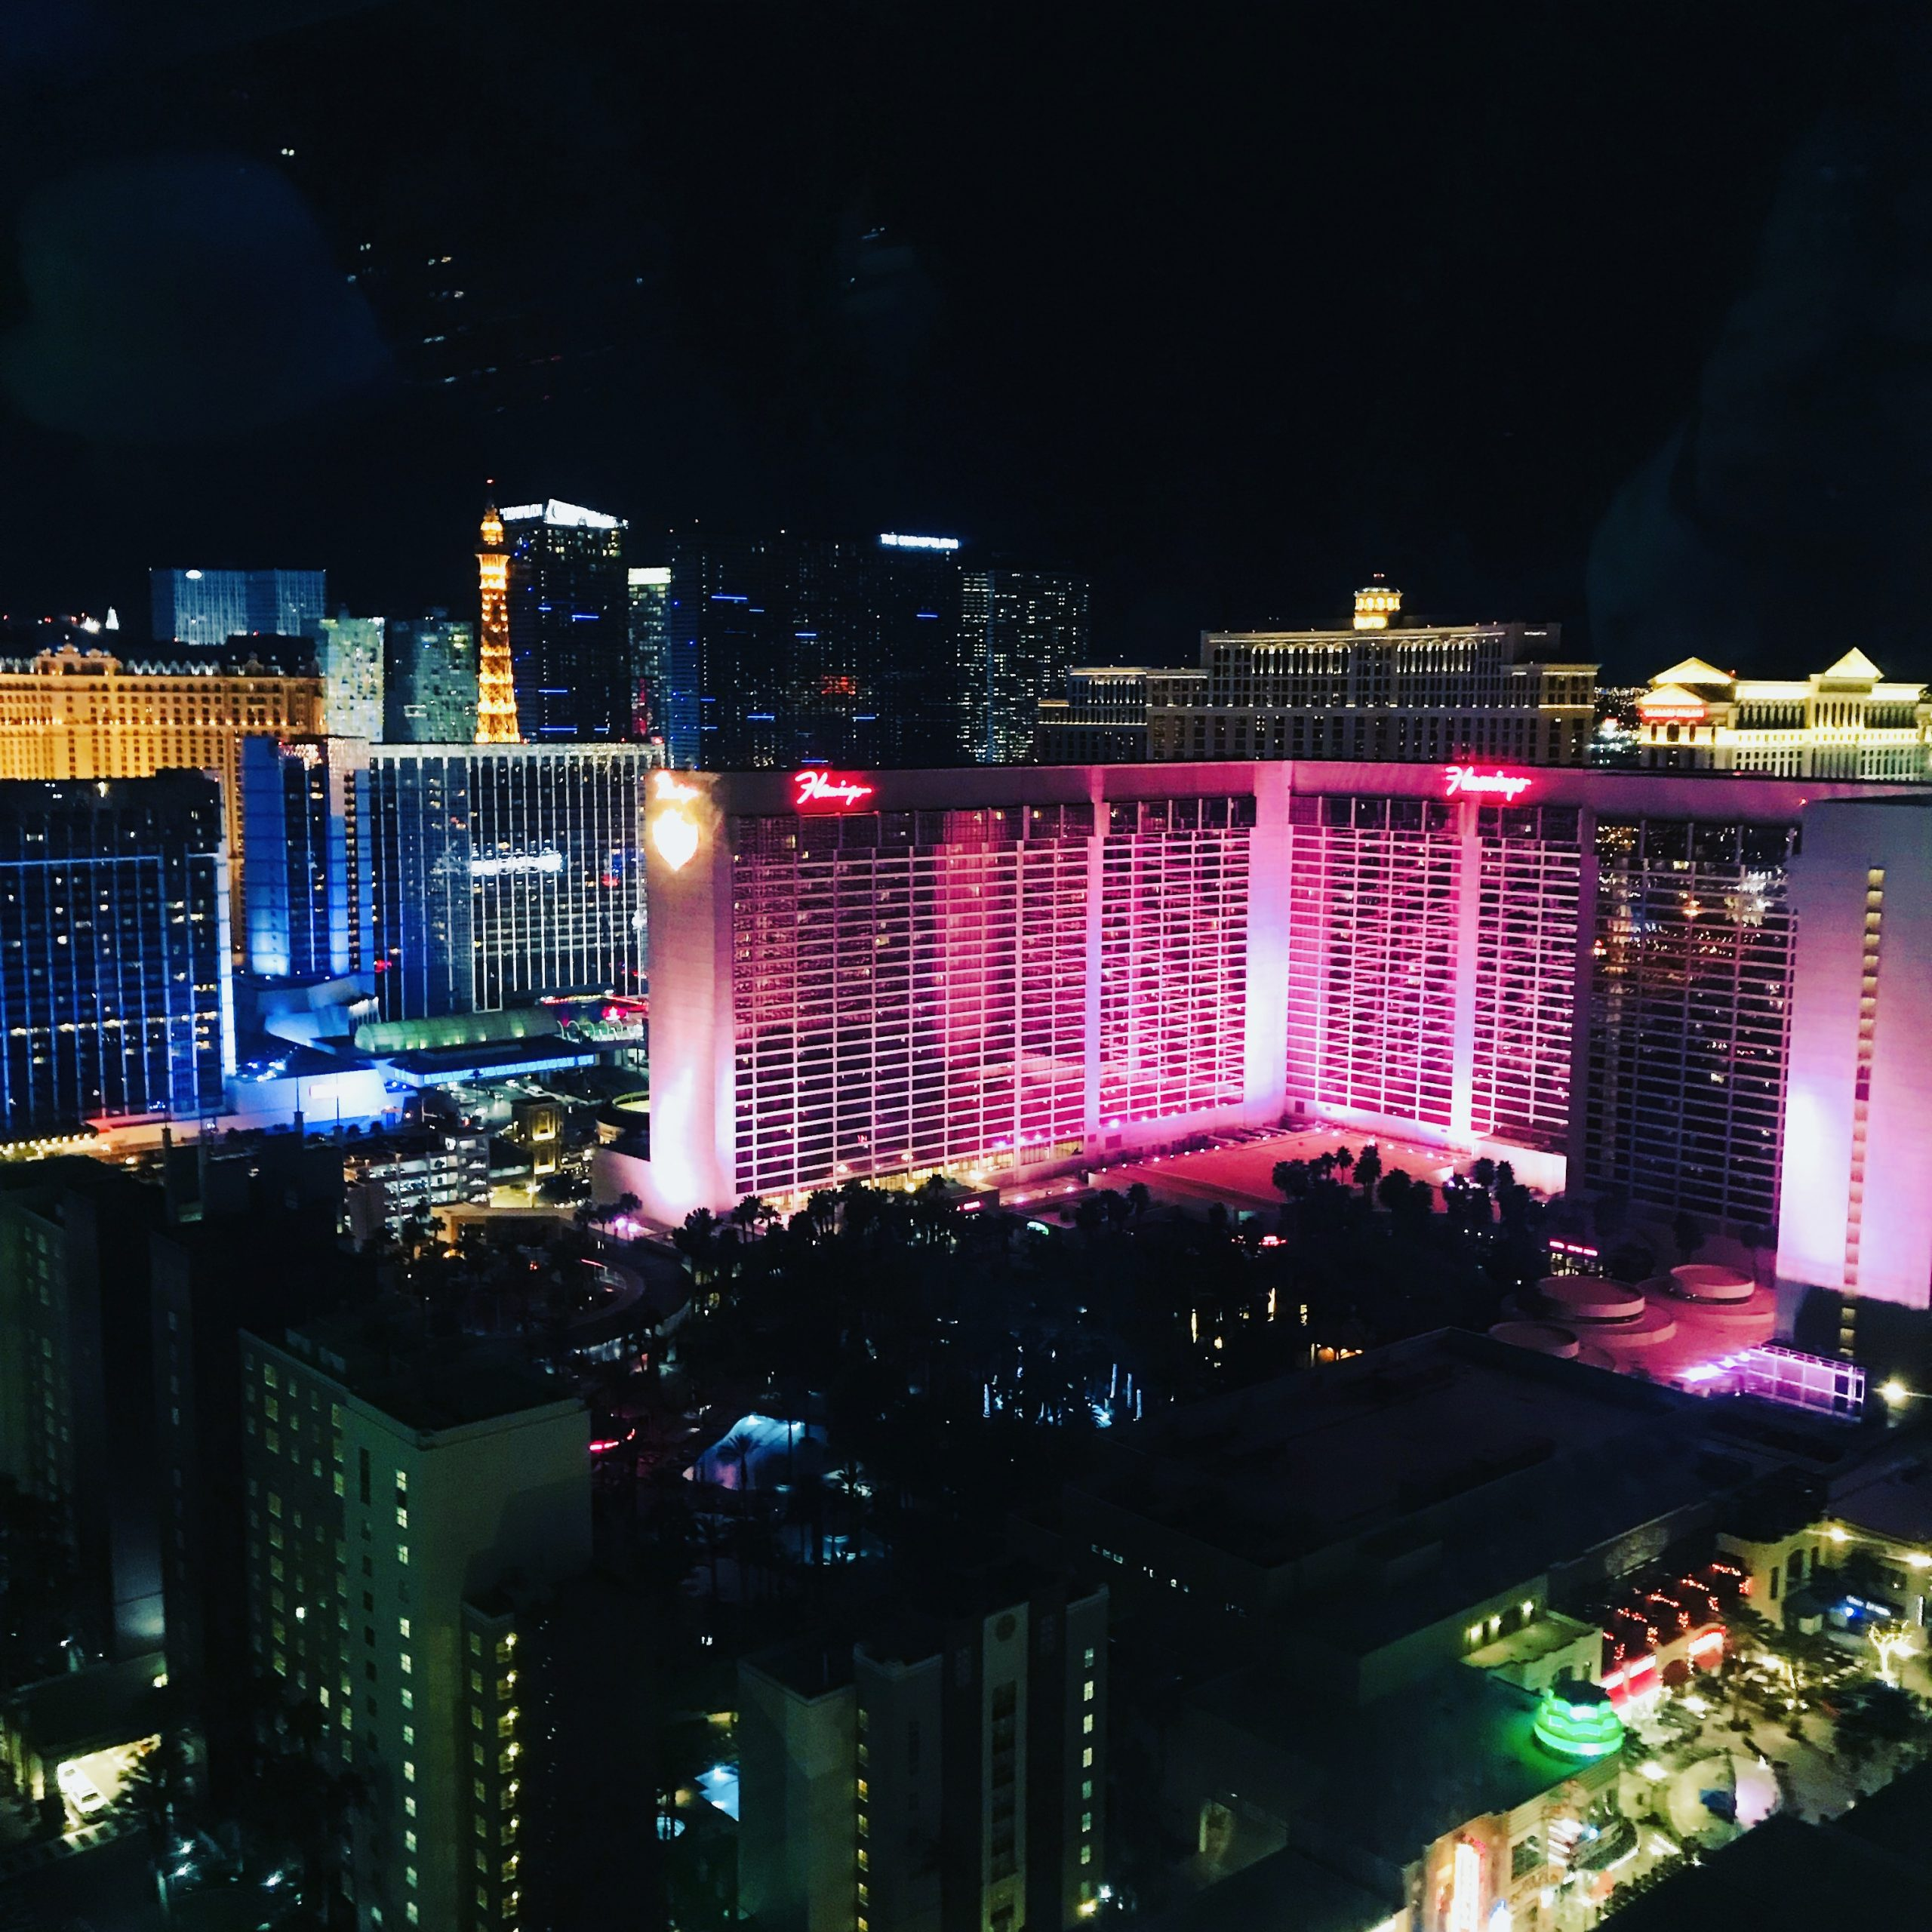 View from the High Roller